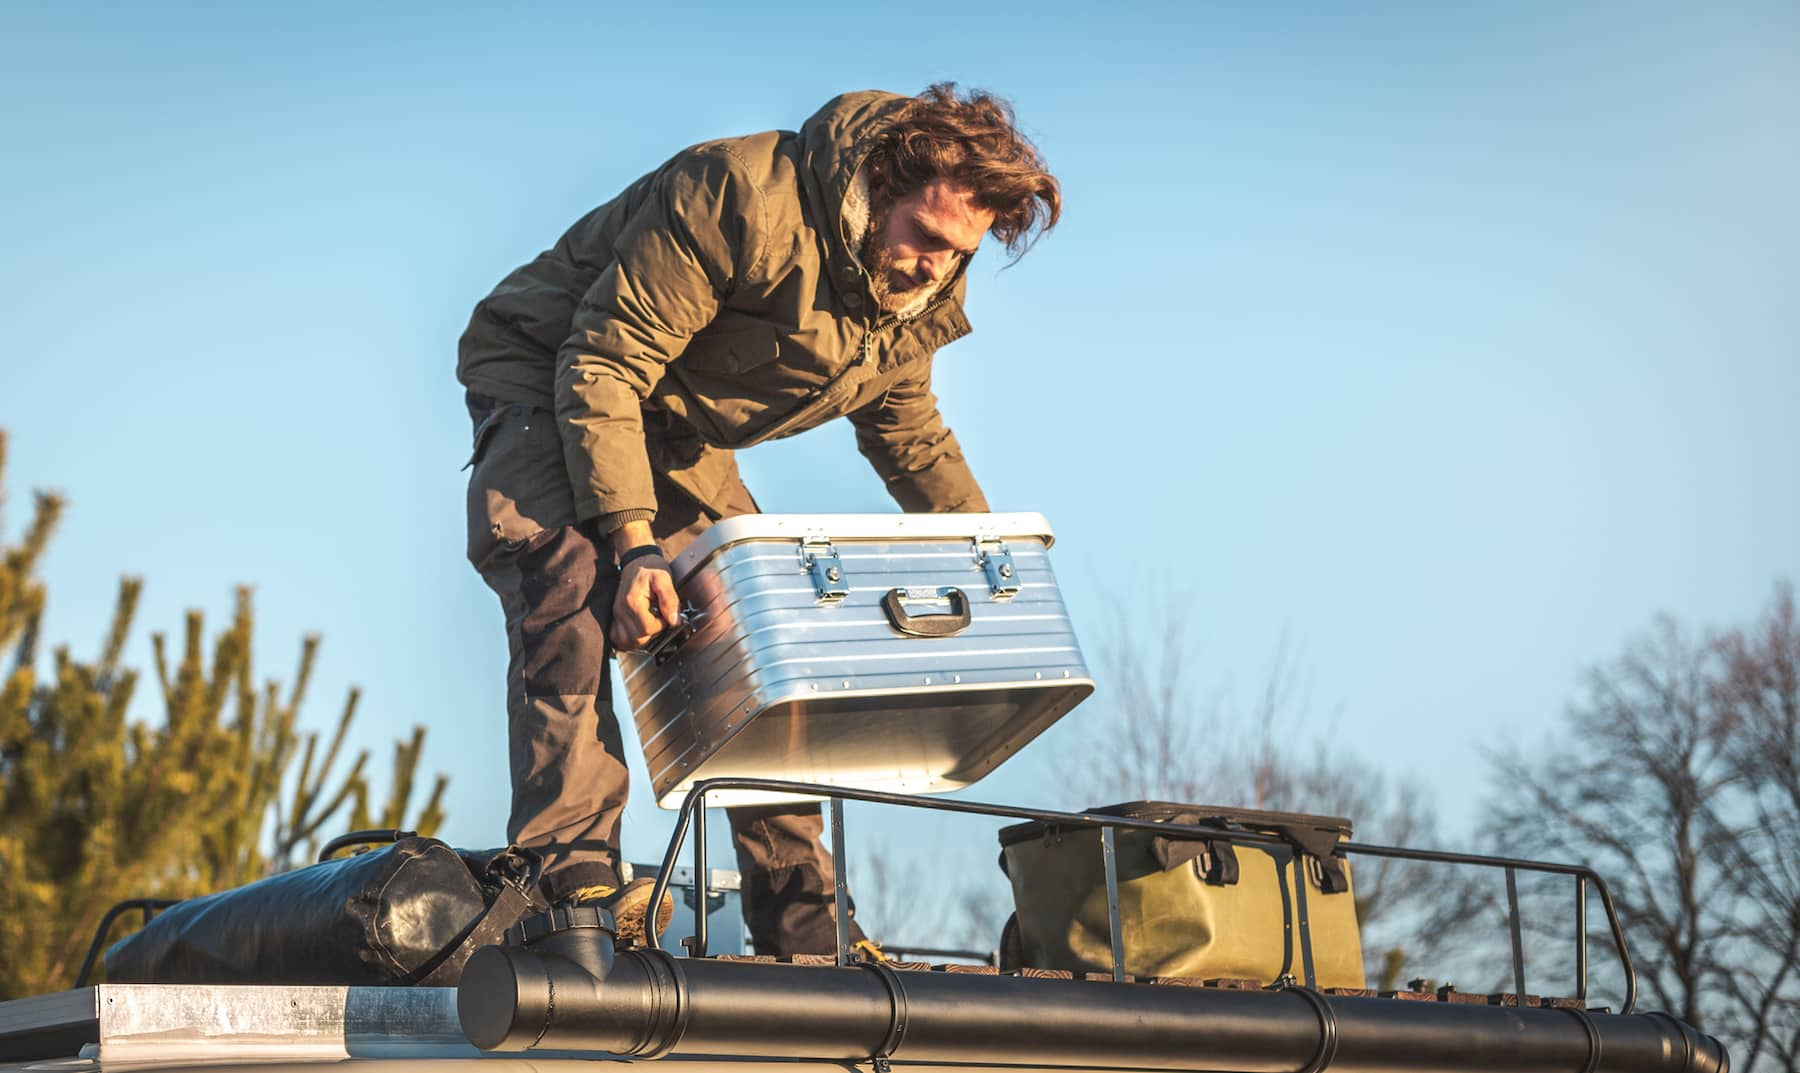 A man is lifting a metal box on the roof of a camper van surrounded by nature